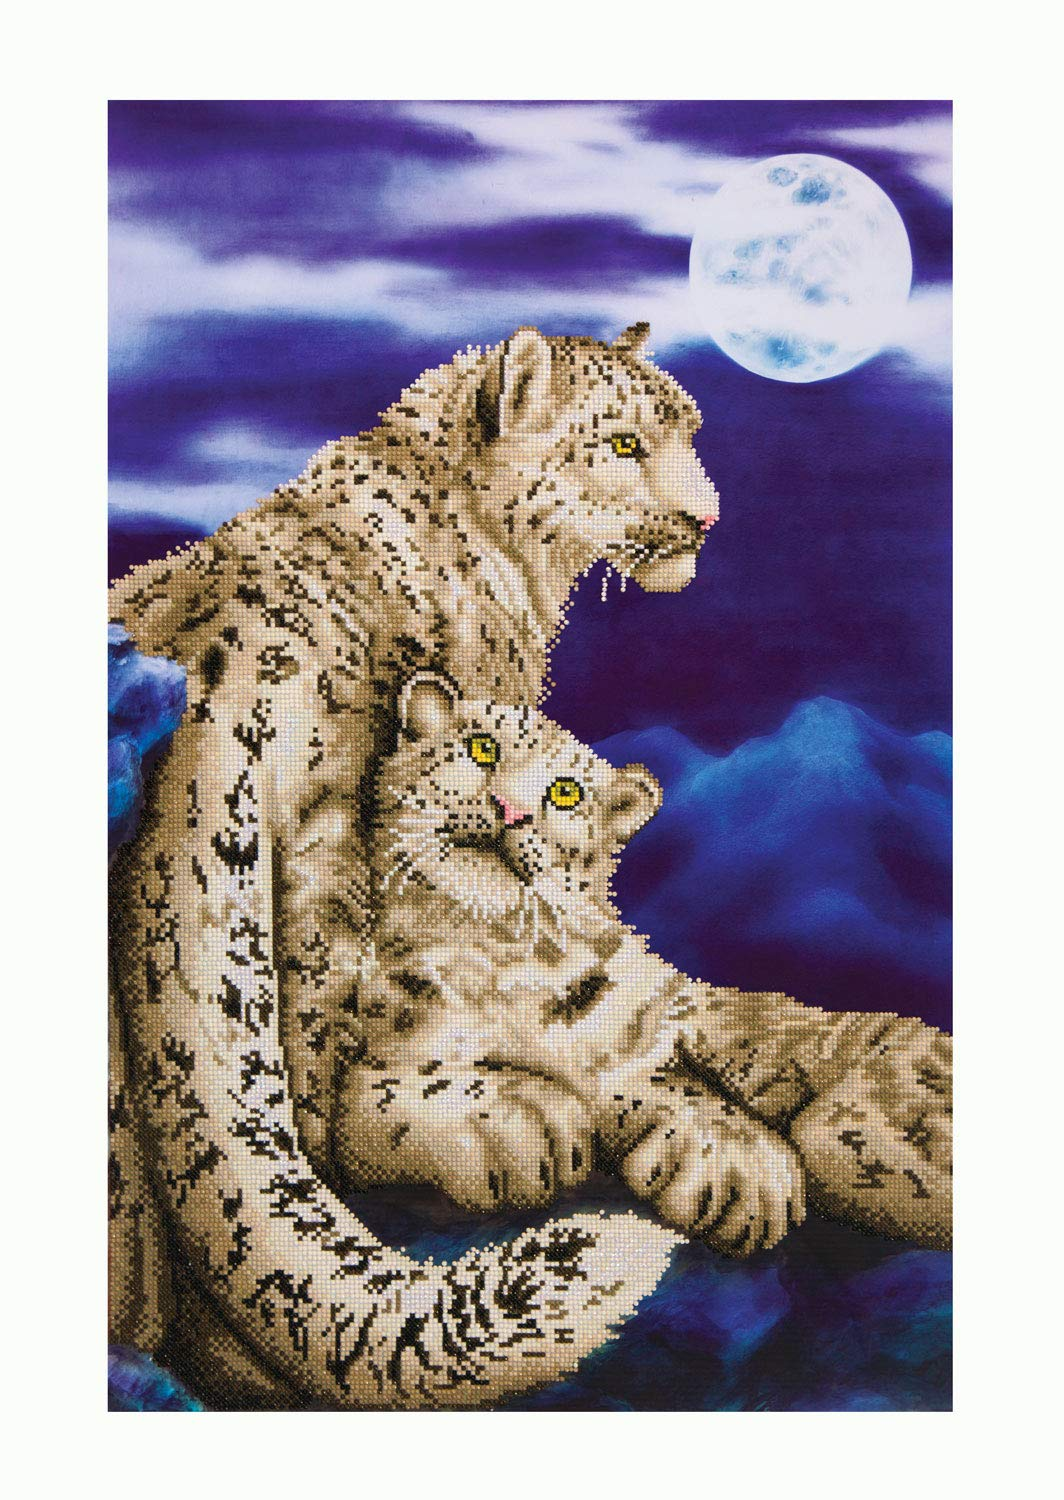 Needleart World Diamond Dotz Diamond Embroidery Facet Art Kit 34.25''X22.75''-Snow Leopards by Needleart World